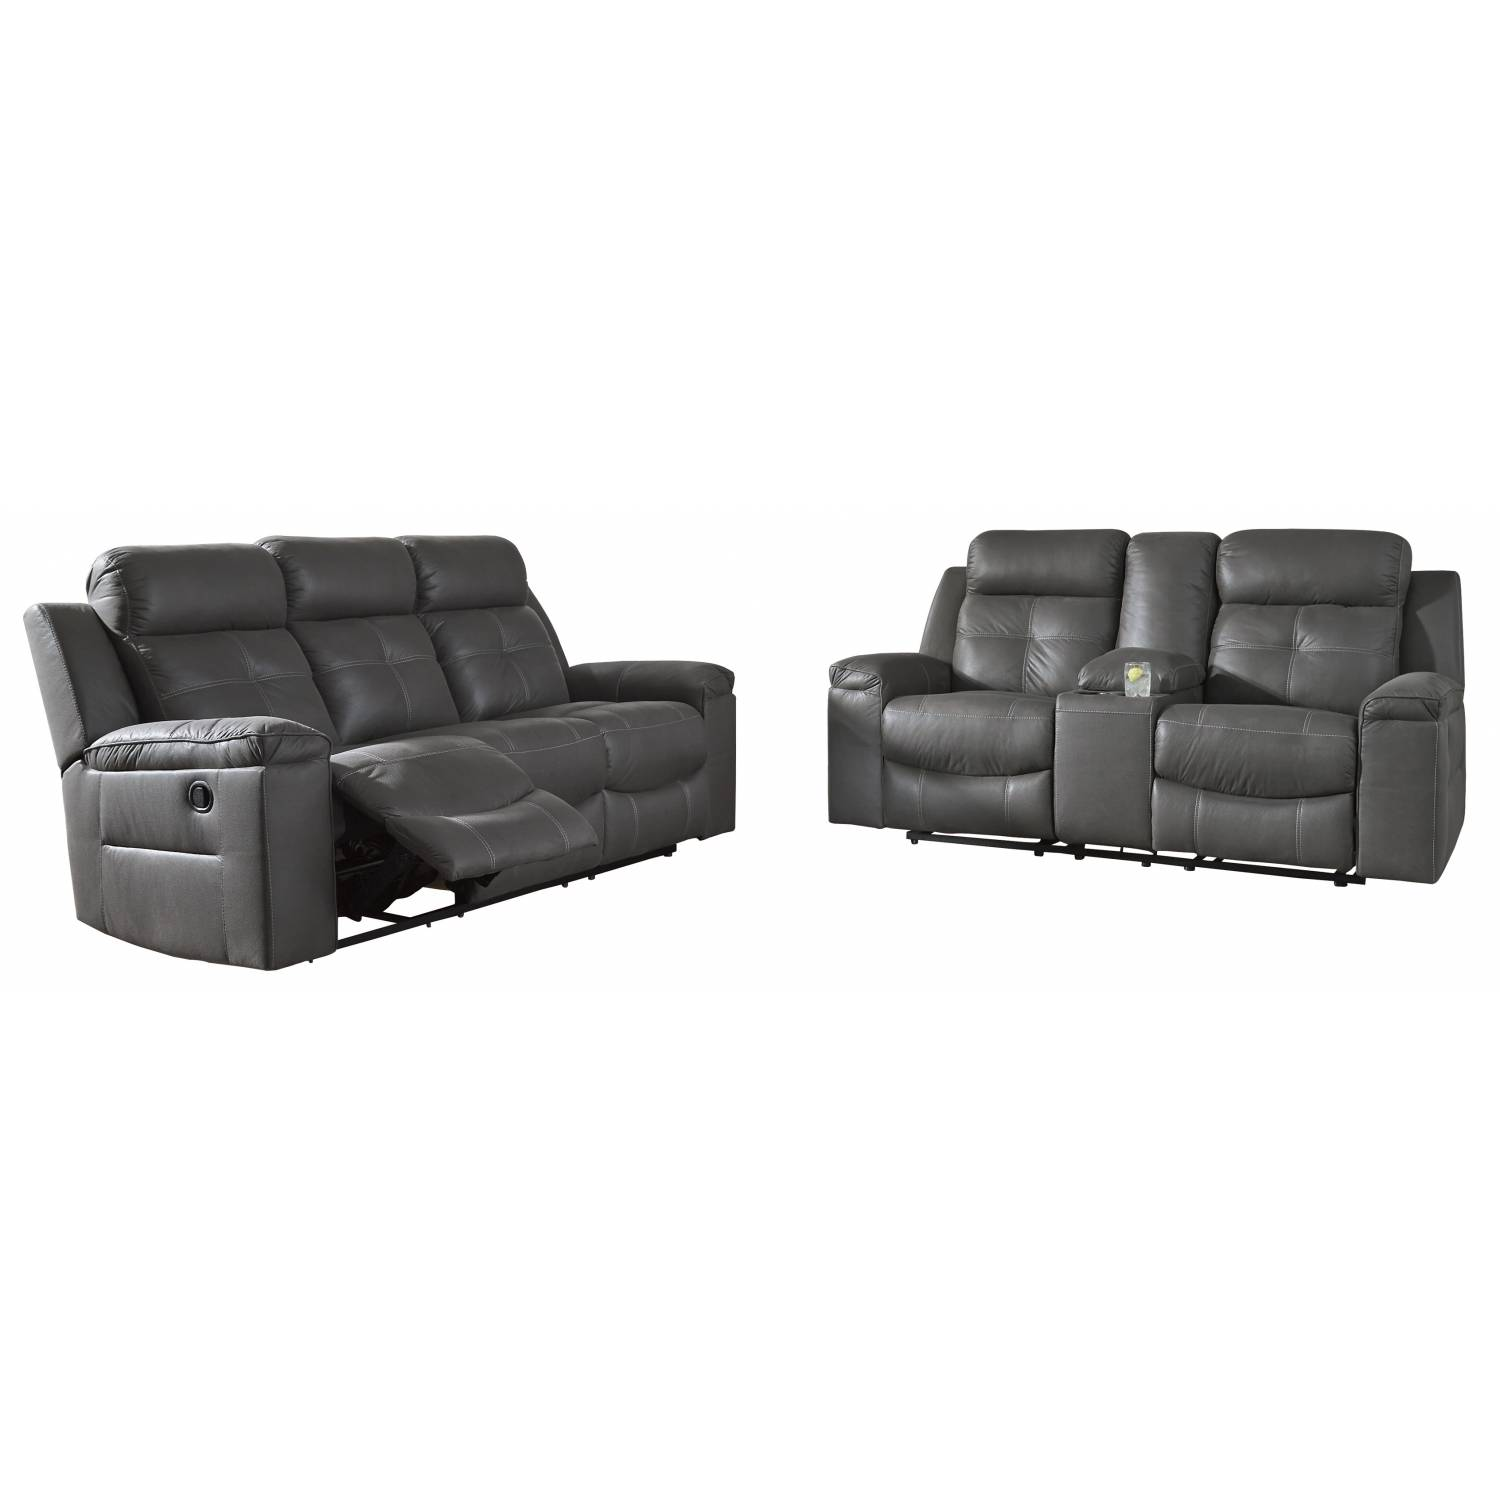 86705 Jesolo 2PC SETS Reclining Sofa + DBL Rec Loveseat w/Console